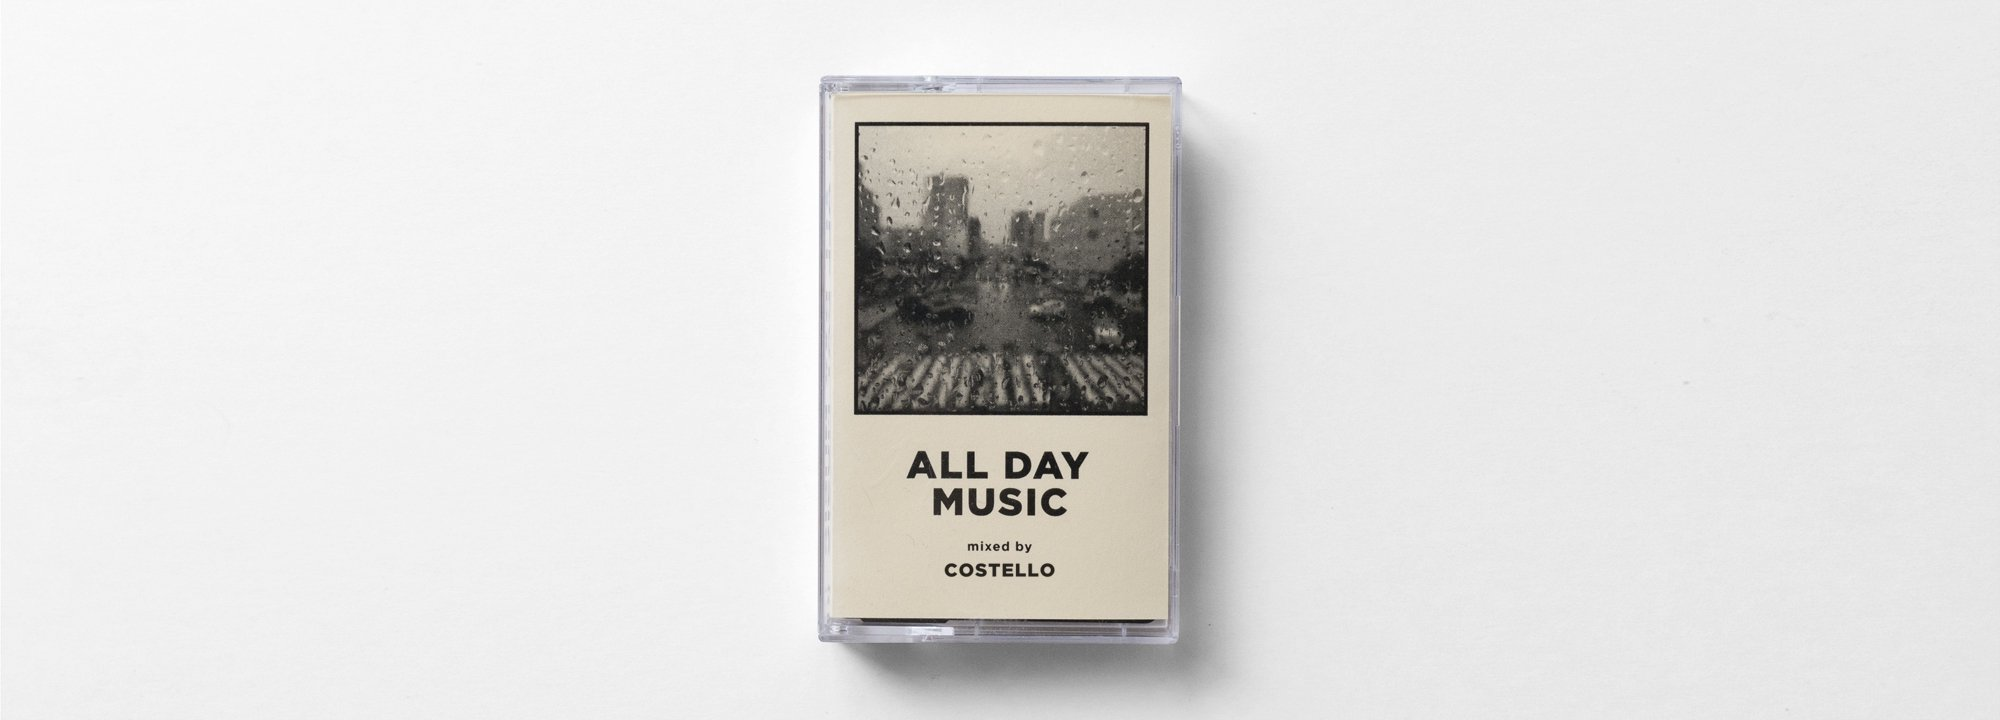 &quot;ALL DAY MUSIC #8&quot; Mixed by COSTELLO<img class='new_mark_img2' src='//img.shop-pro.jp/img/new/icons5.gif' style='border:none;display:inline;margin:0px;padding:0px;width:auto;' />